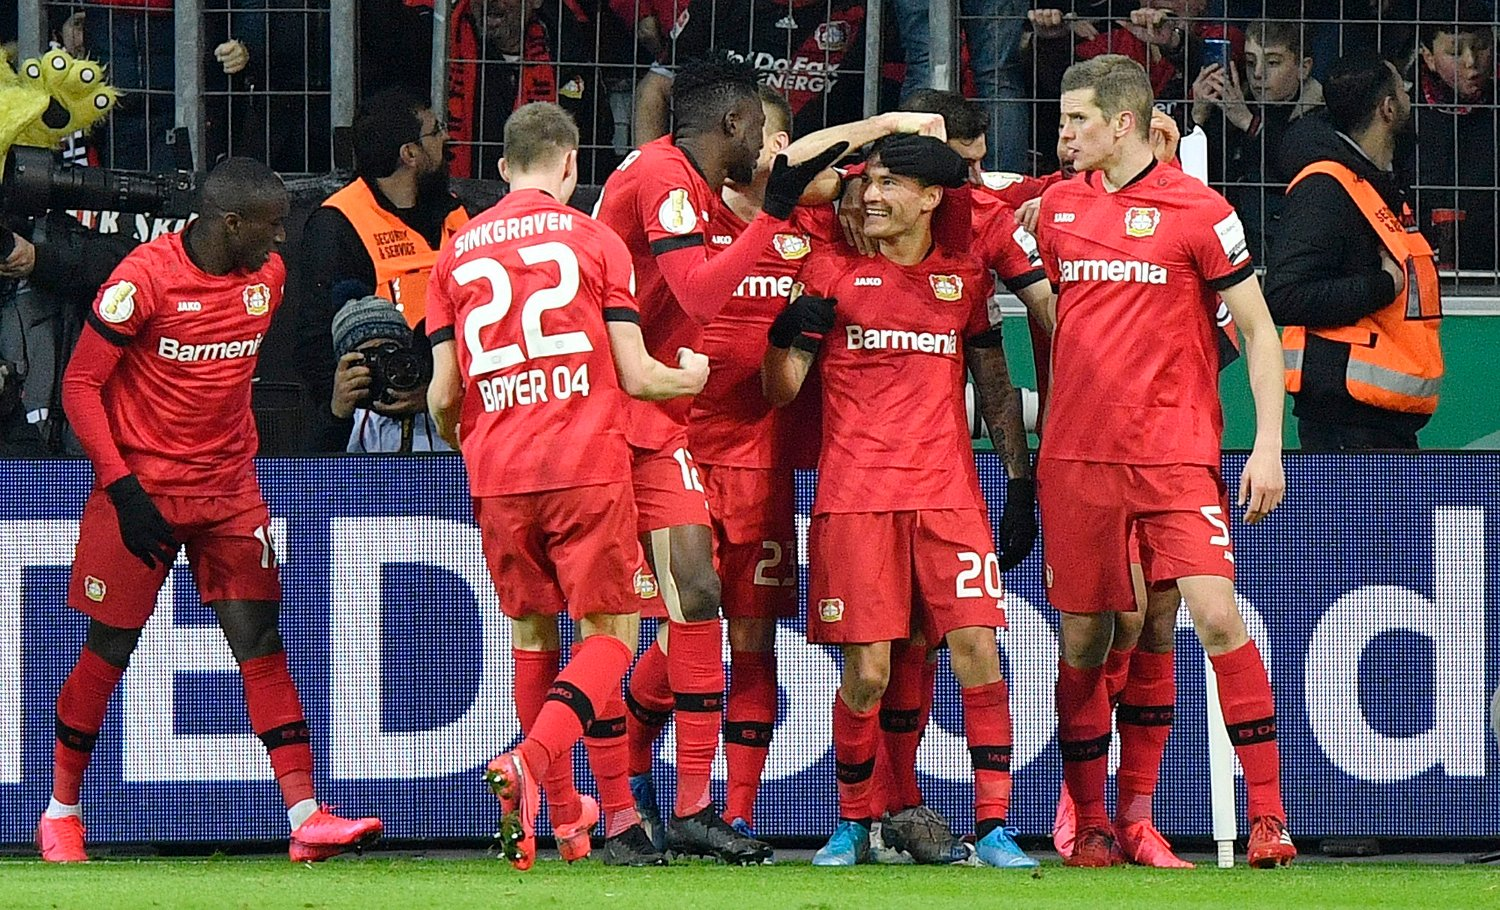 Germany Soccer Cup Leverkusen's Charles Aranguiz is celebrated after scoring his side's second goal during the German soccer cup, DFB Pokal, quarter-final match between Bayer Leverkusen and Union Berlin in Leverkusen, Germany, Wednesday, March 4, 2020.